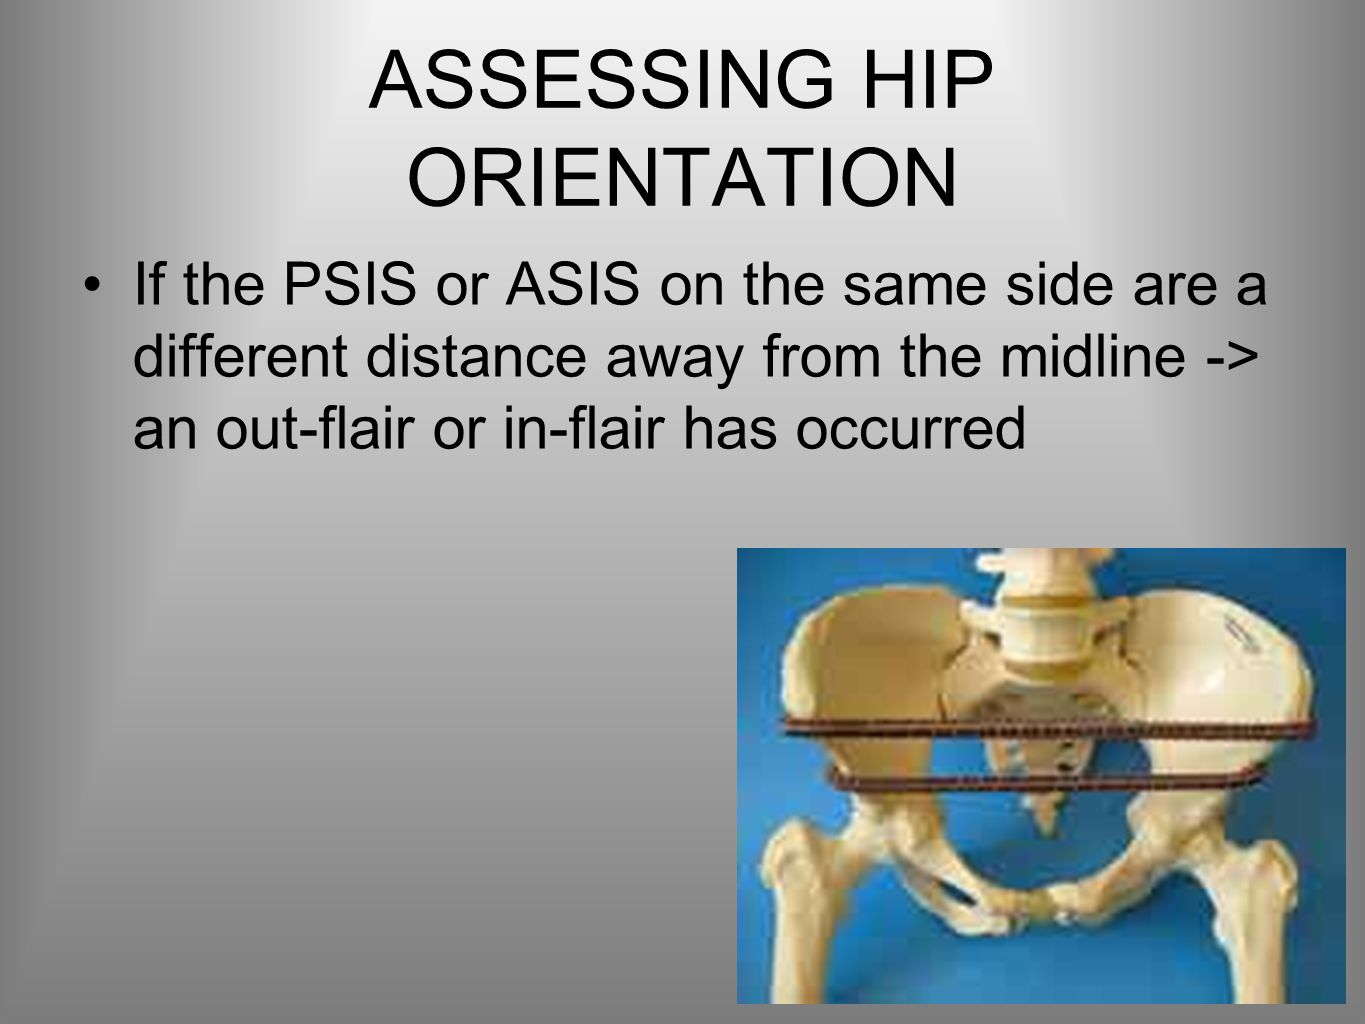 ASSESSING HIP ORIENTATION If the PSIS or ASIS on the same side are a different distance away from the midline -> an out-flair or in-flair has occurred